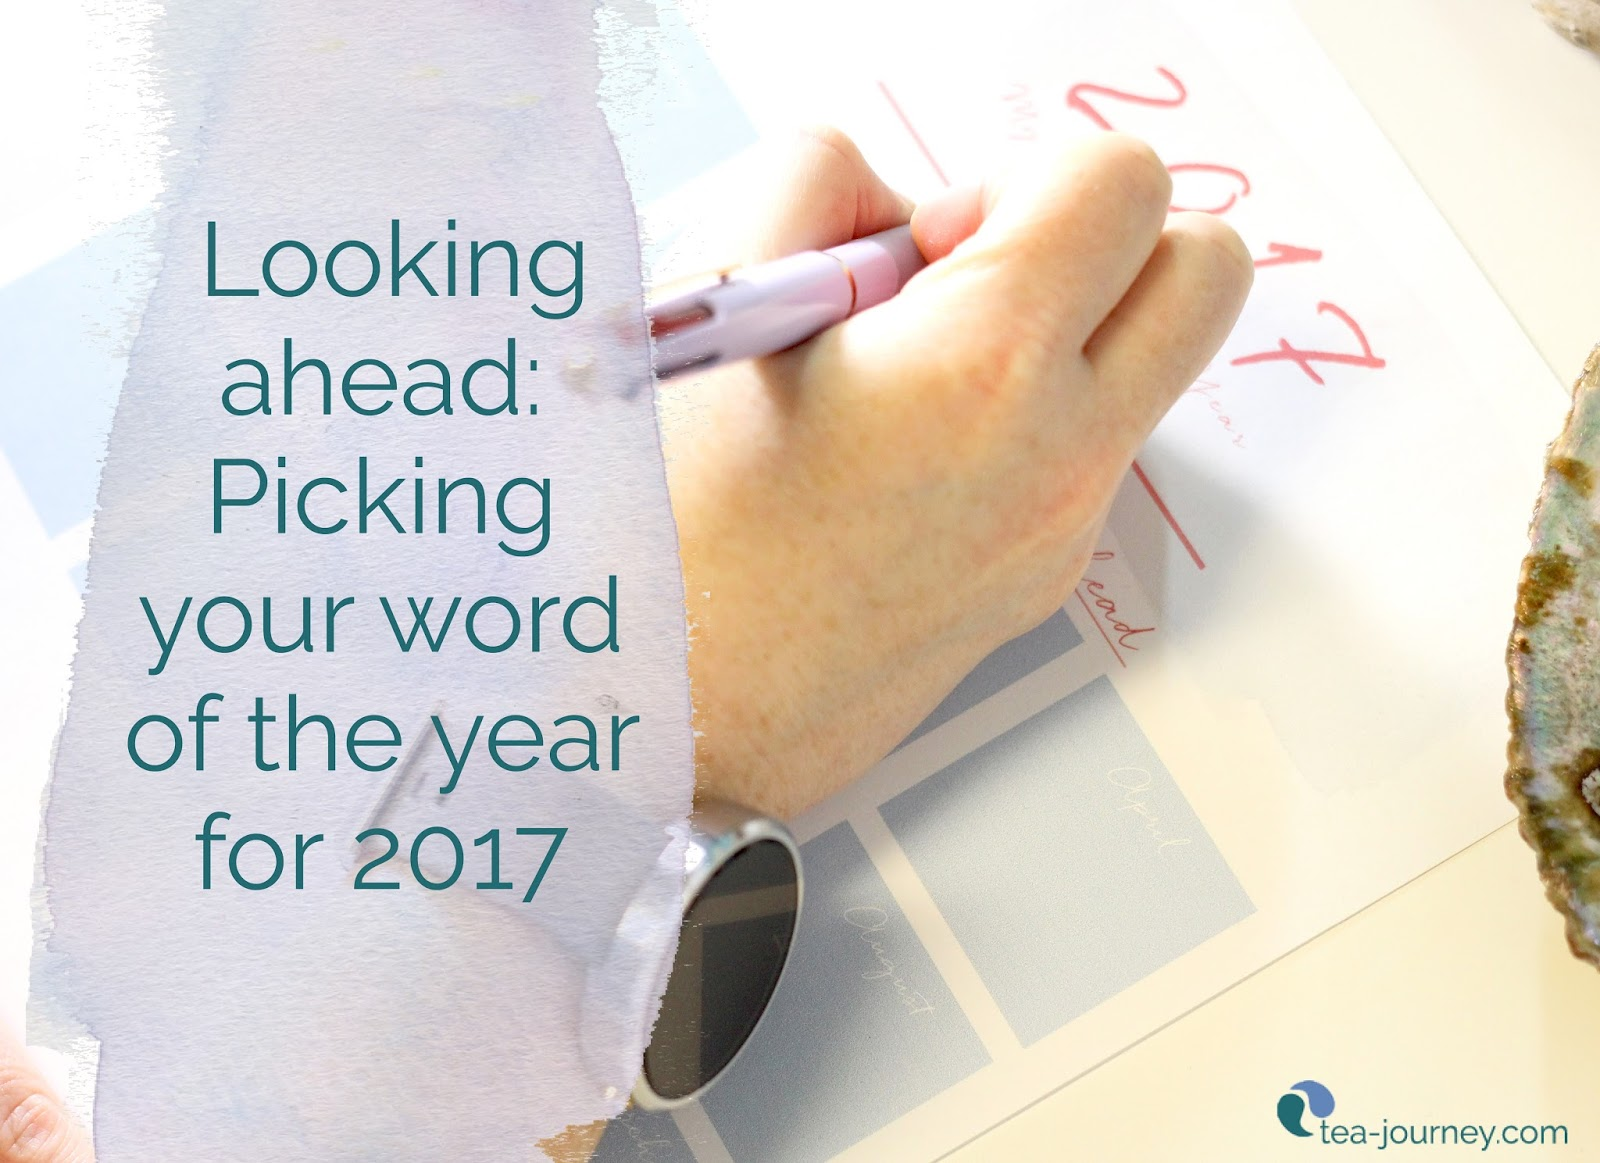 Make your year planning simple by beginning with your word of the year with these tips. And a printable planner to draft out the year ahead for a spirited intentional Tea Journey year..